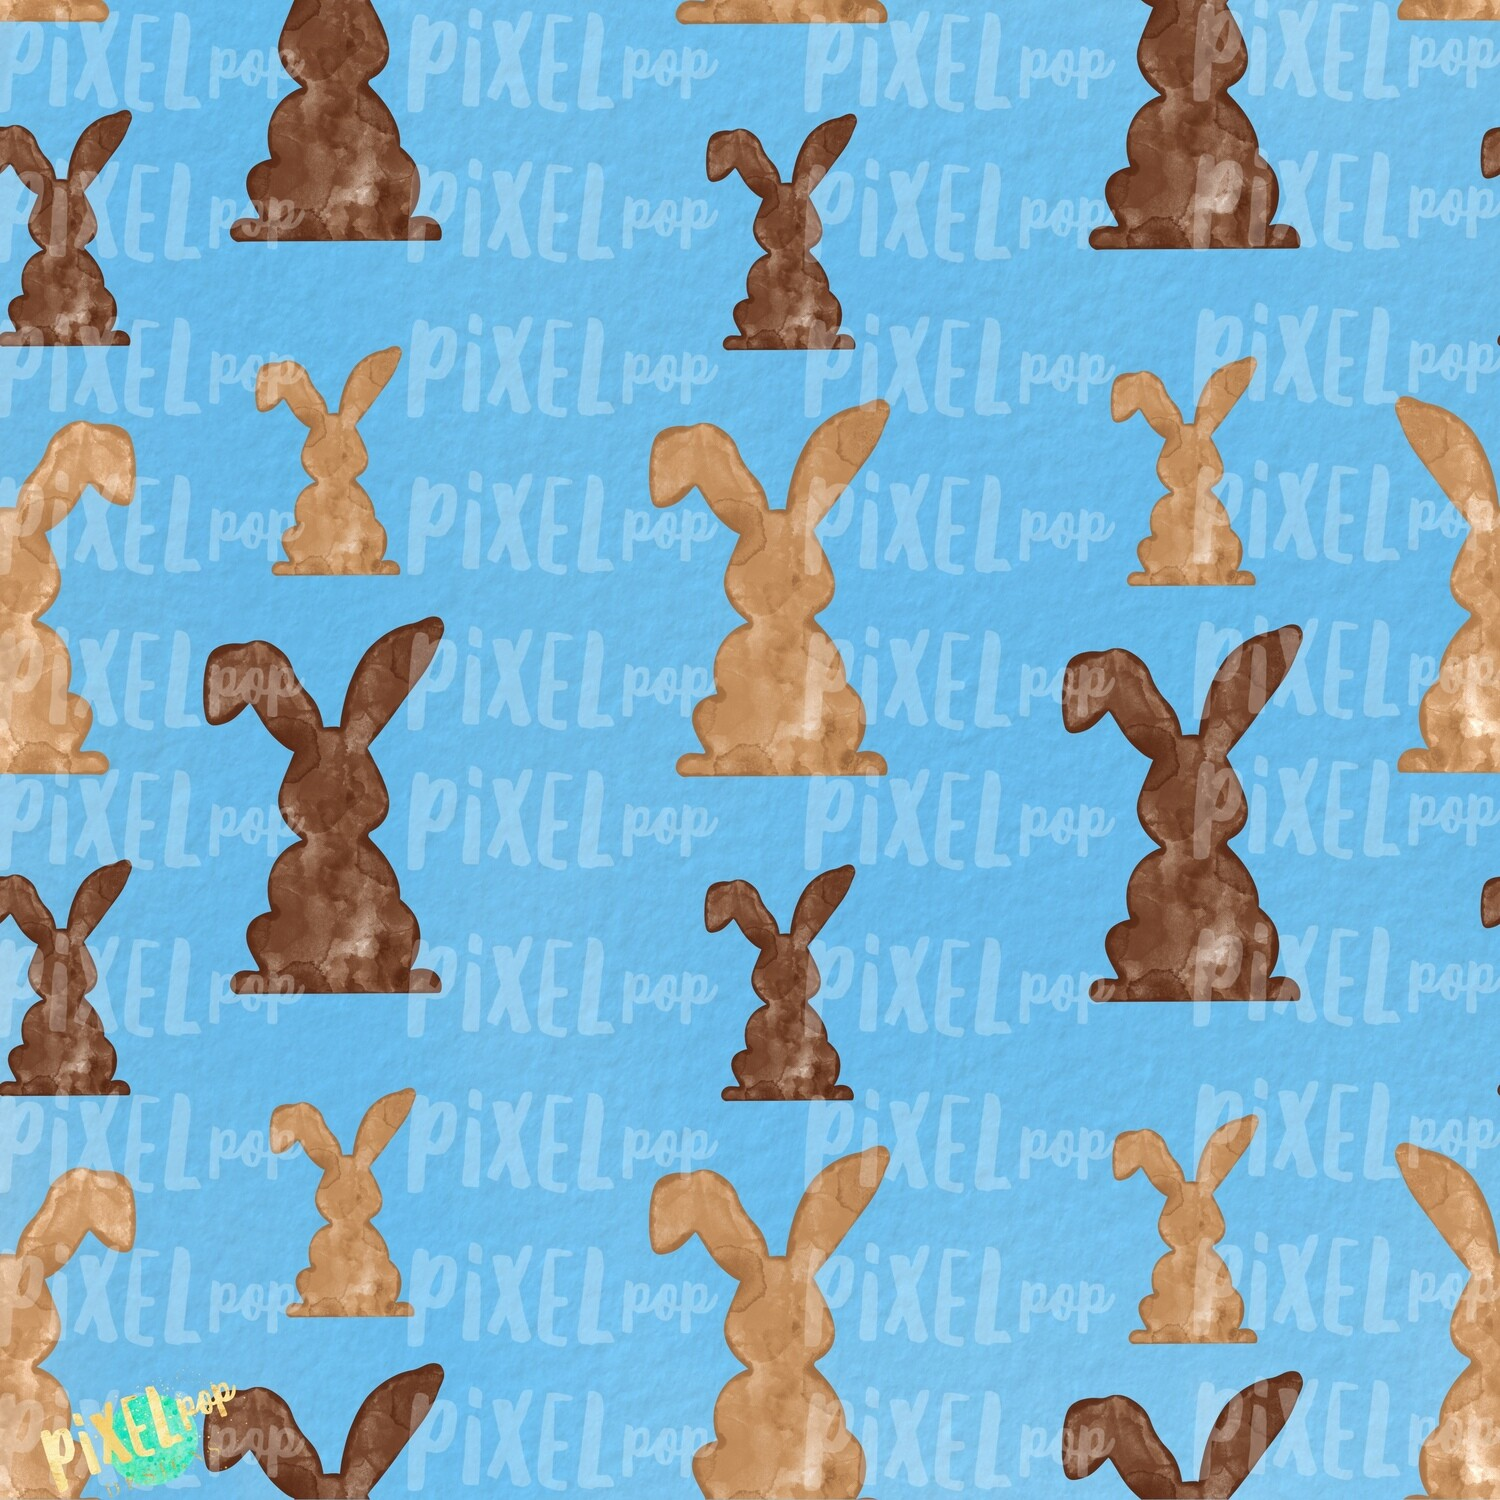 Bunnies Galore Blue Easter Digital Paper Sublimation PNG | Hand Painted Art | Sublimation PNG | Digital Download | Digital Scrapbooking Paper